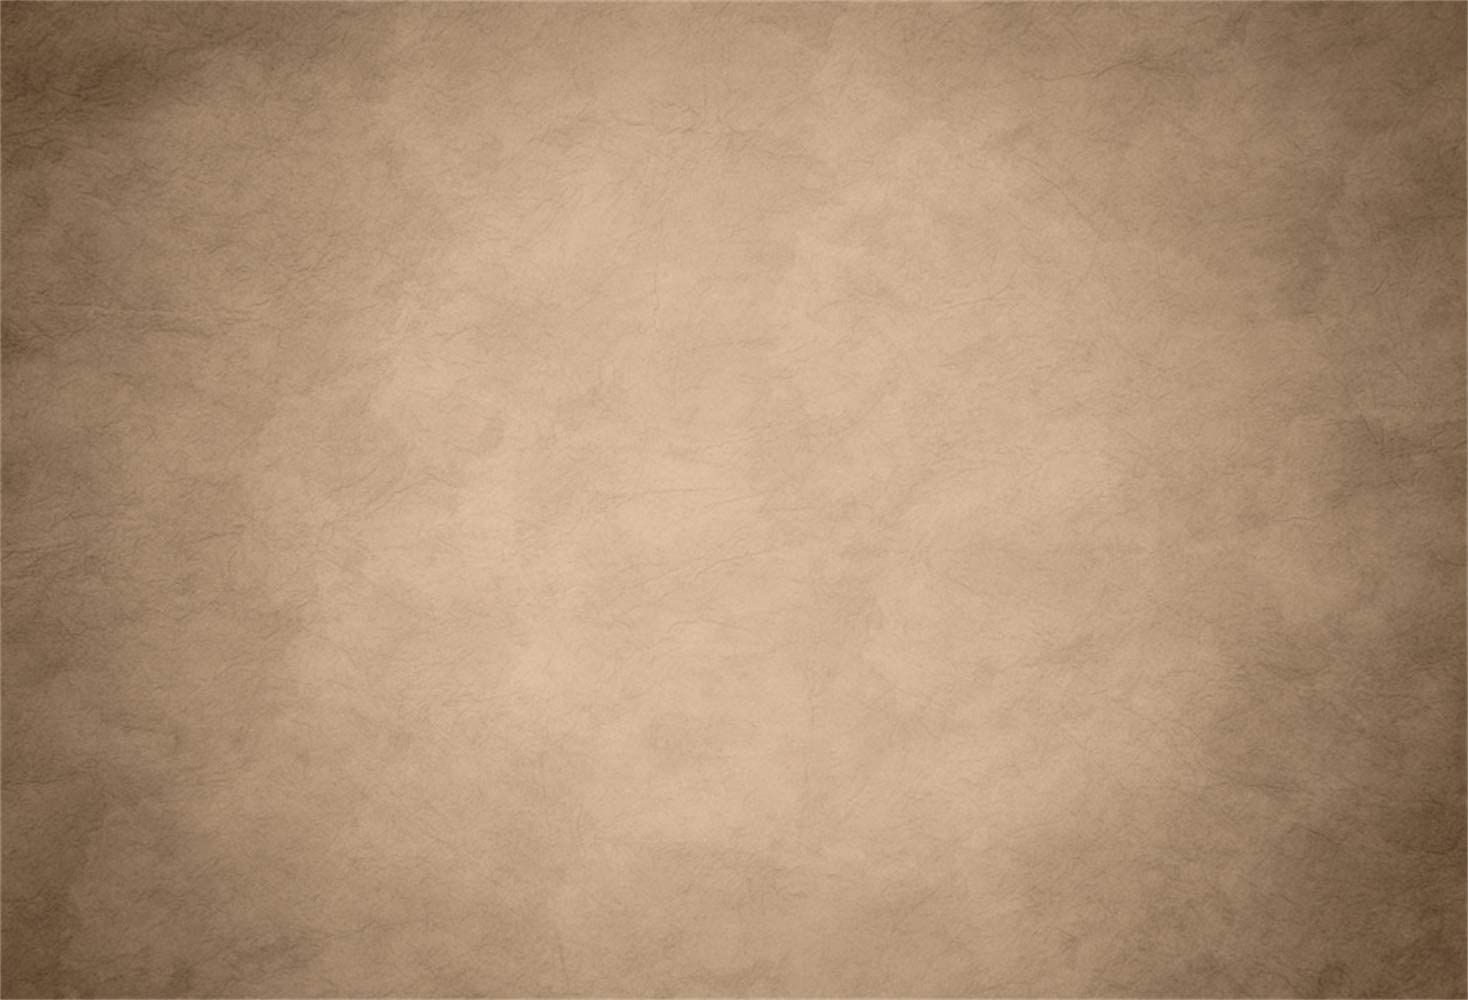 Laeacco 8x6.5ft Retro Abstract Vinyl Recommended Grun Photography Background Sale price